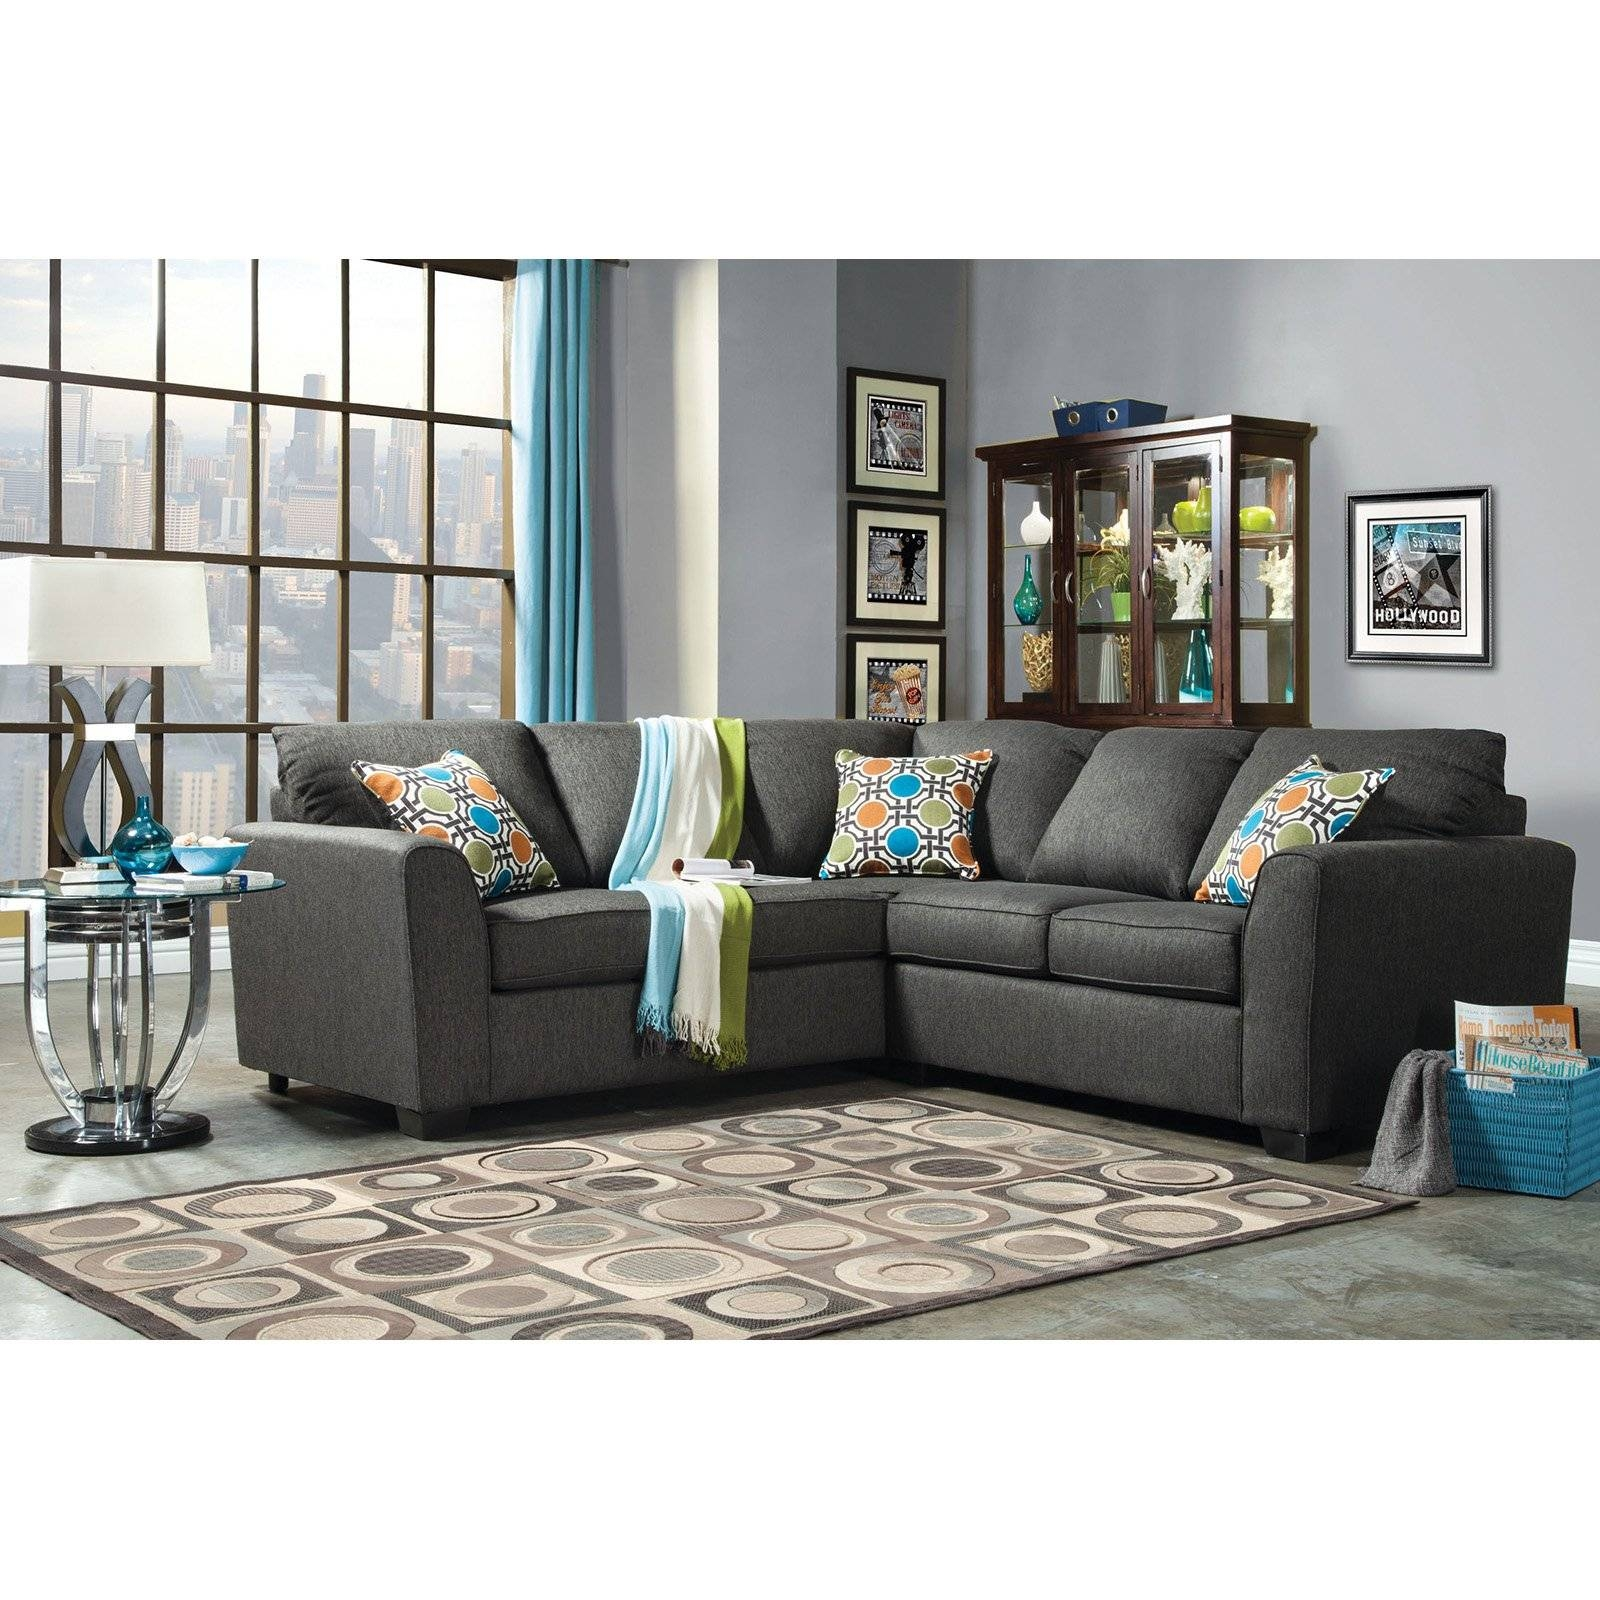 Furniture: Exciting Sectional Sofas Costco For Your Family Room in Small 2 Piece Sectional Sofas (Image 17 of 30)